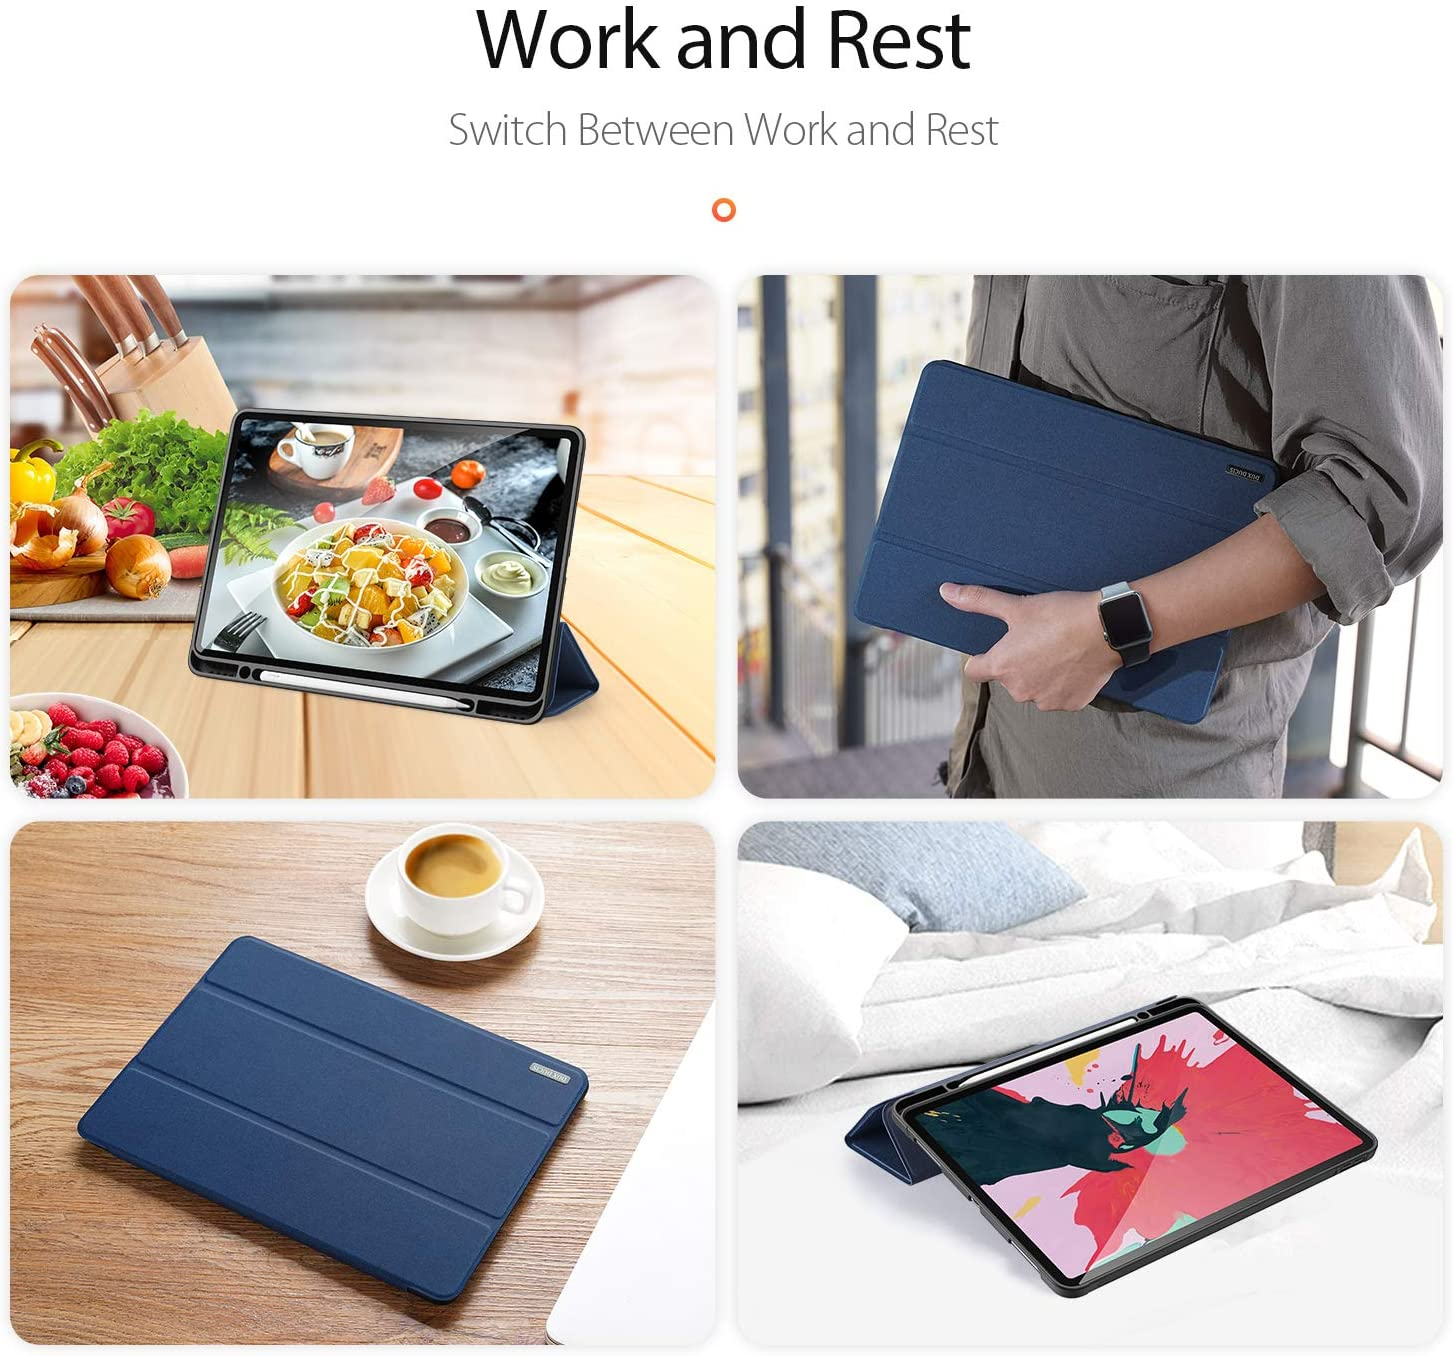 Cover 2020 Auto Sleep/Wake For Case up Case Pro Holder,Smart Trifold iPad Pencil 12.9